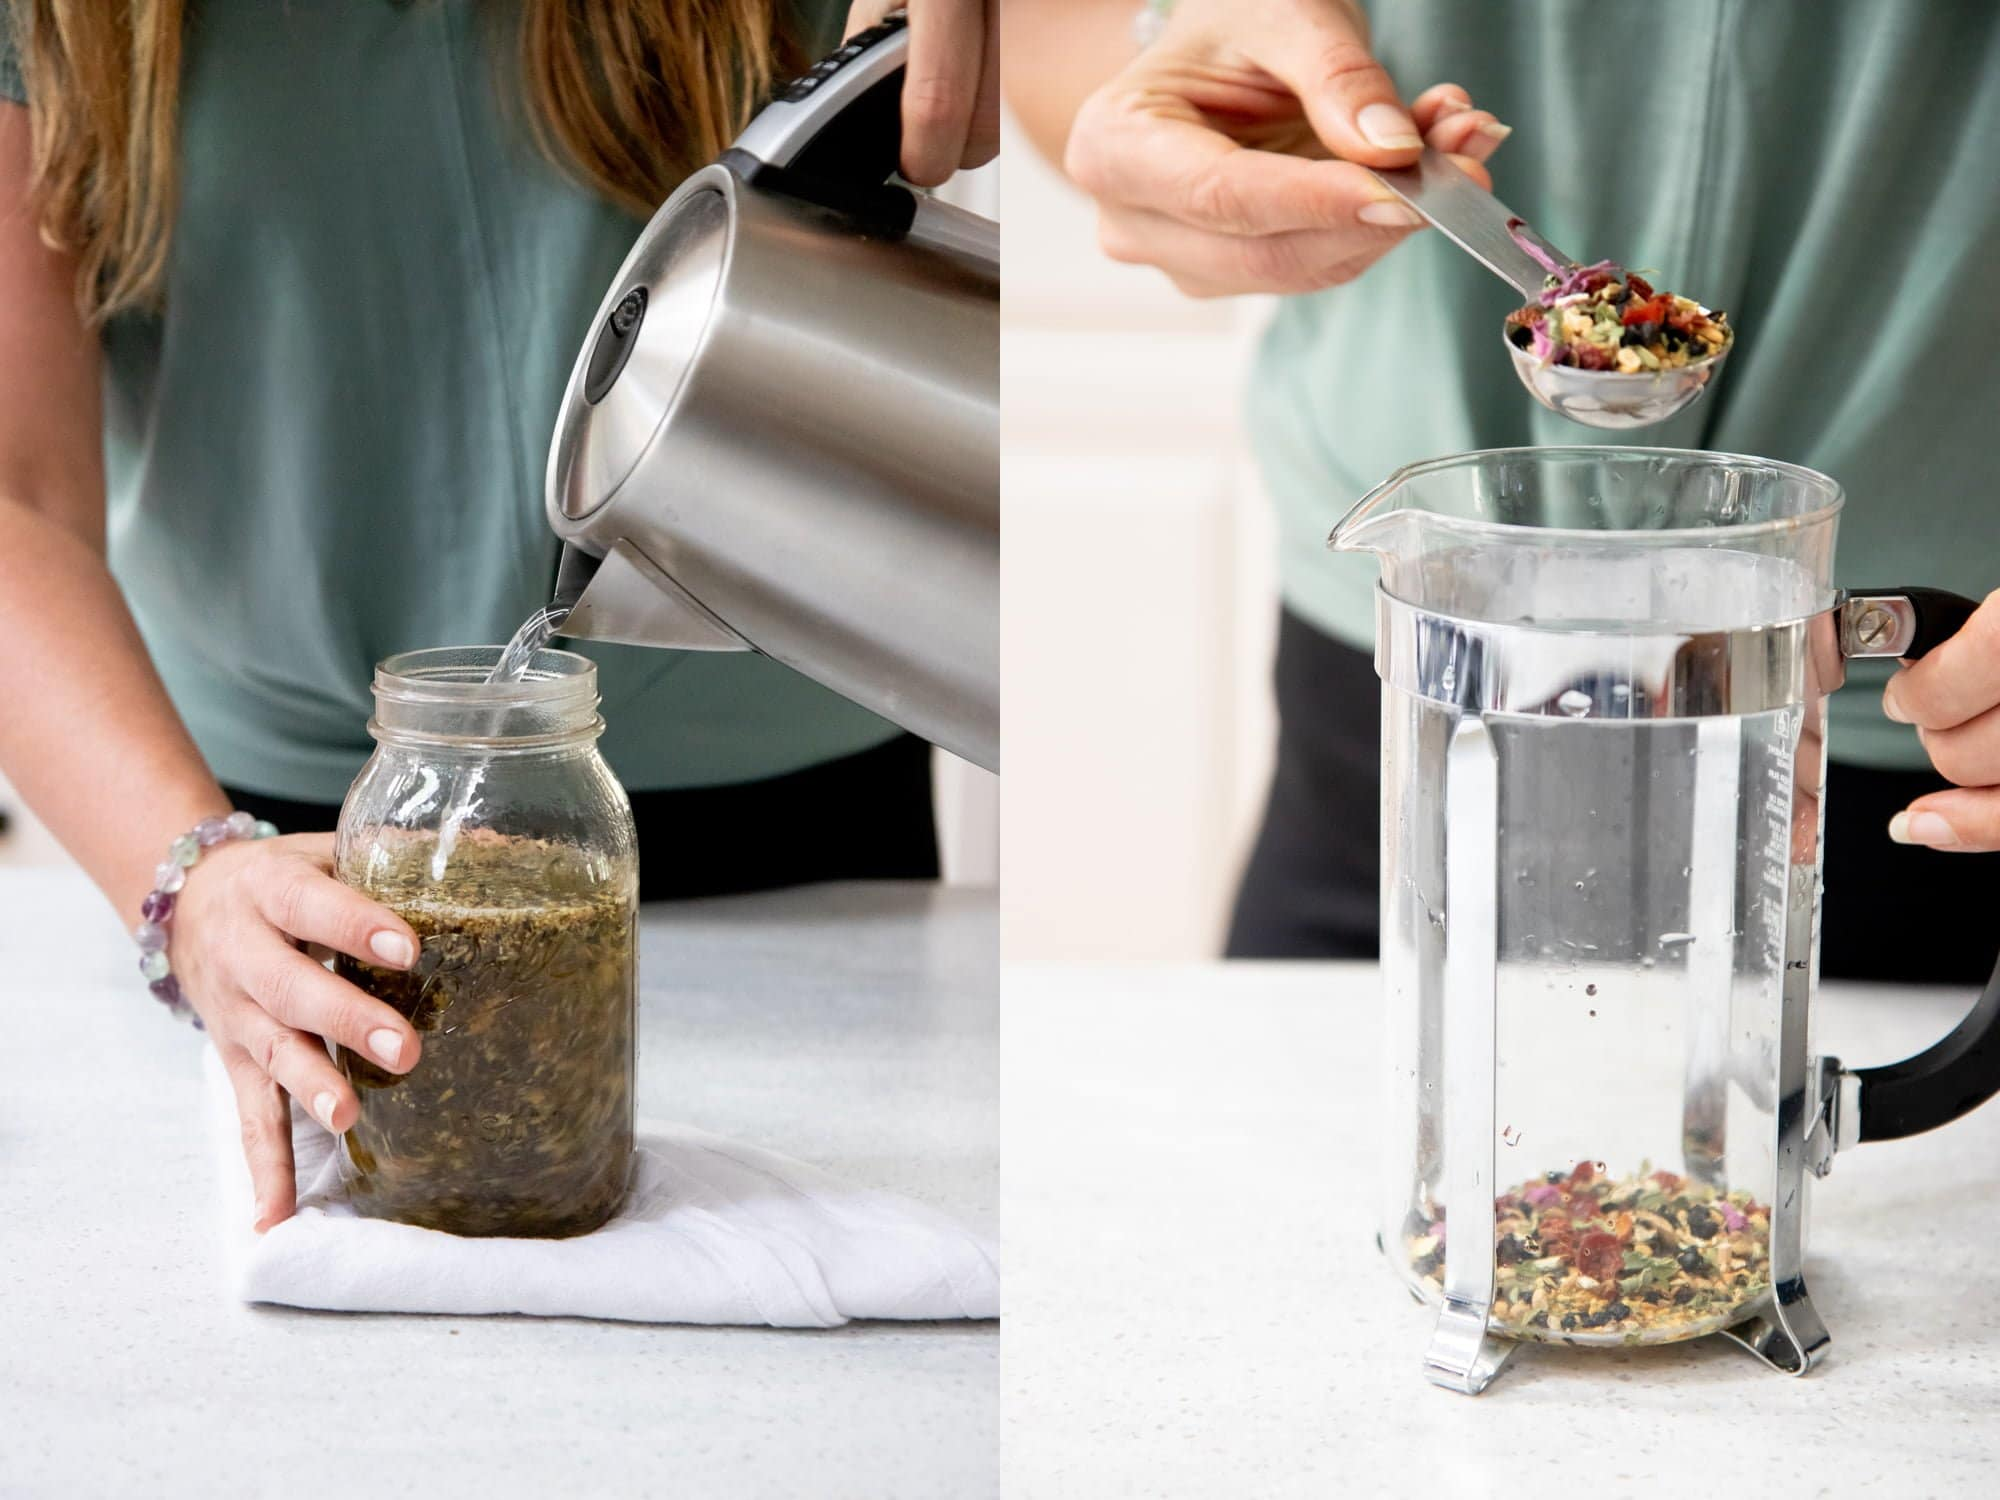 Side-by-side shot of herbal tea being brewed. On the left, tea is being poured into a mason jar. On the right, tea is being spooned into a French press.